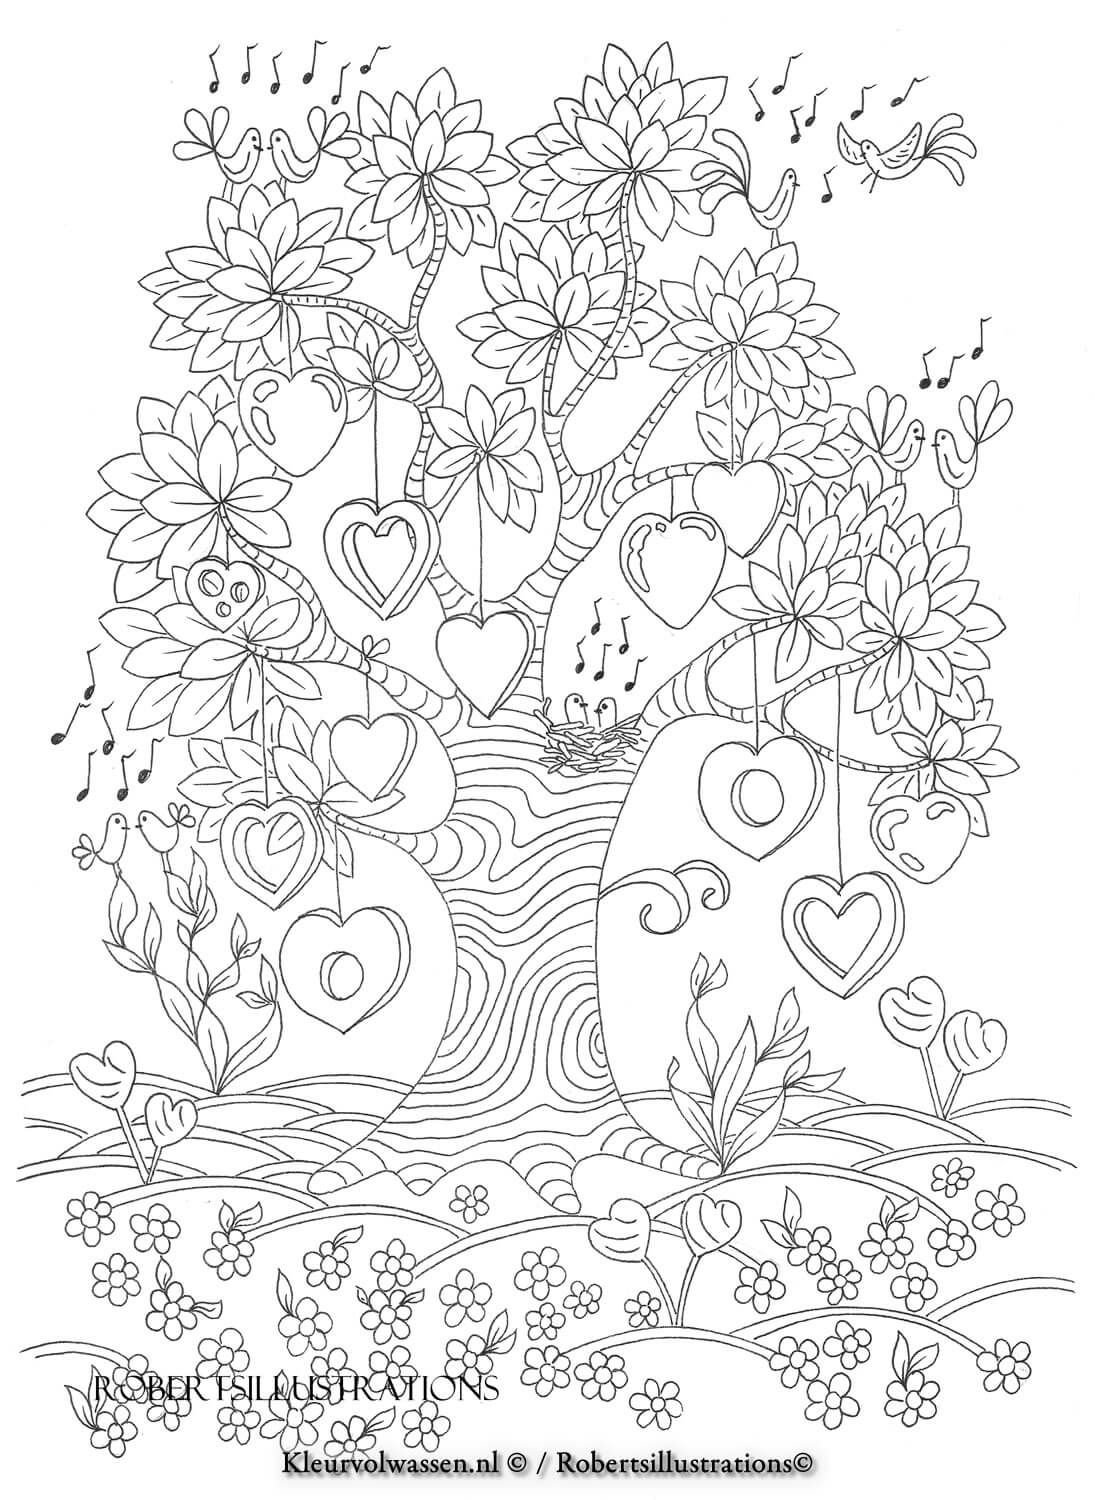 Pin By Jana Cudova On Antistres Coloring Pages Coloring Book Art Coloring Books